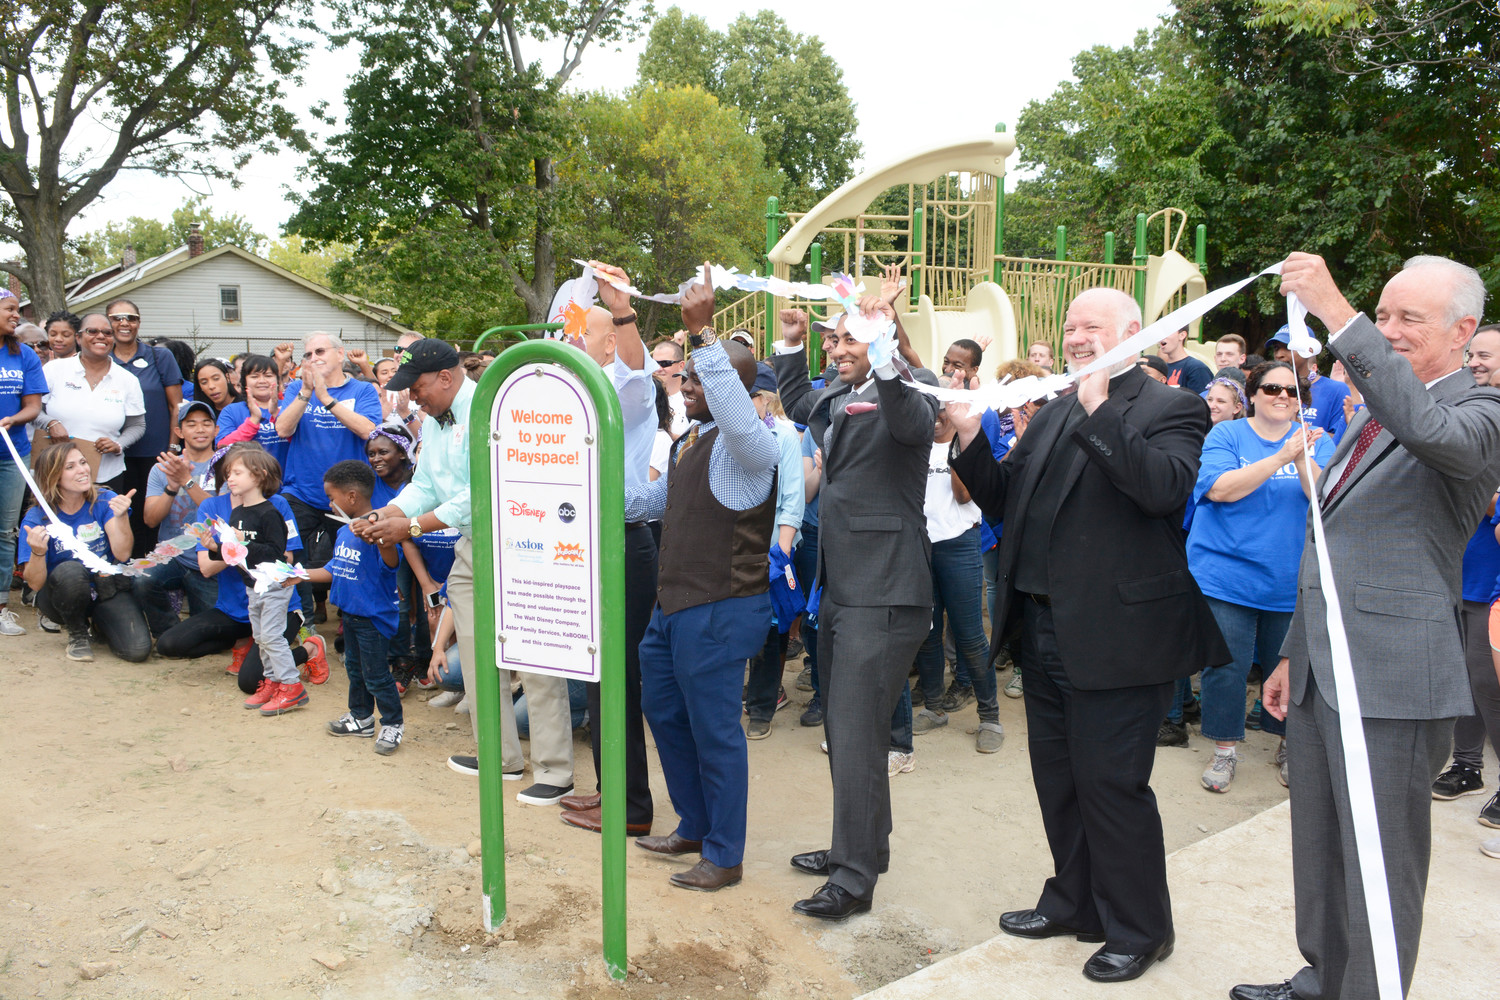 Msgr. Kevin Sullivan, executive director of Catholic Charities in the archdiocese, second from right, participates in the ribbon-cutting ceremony to open the playground.